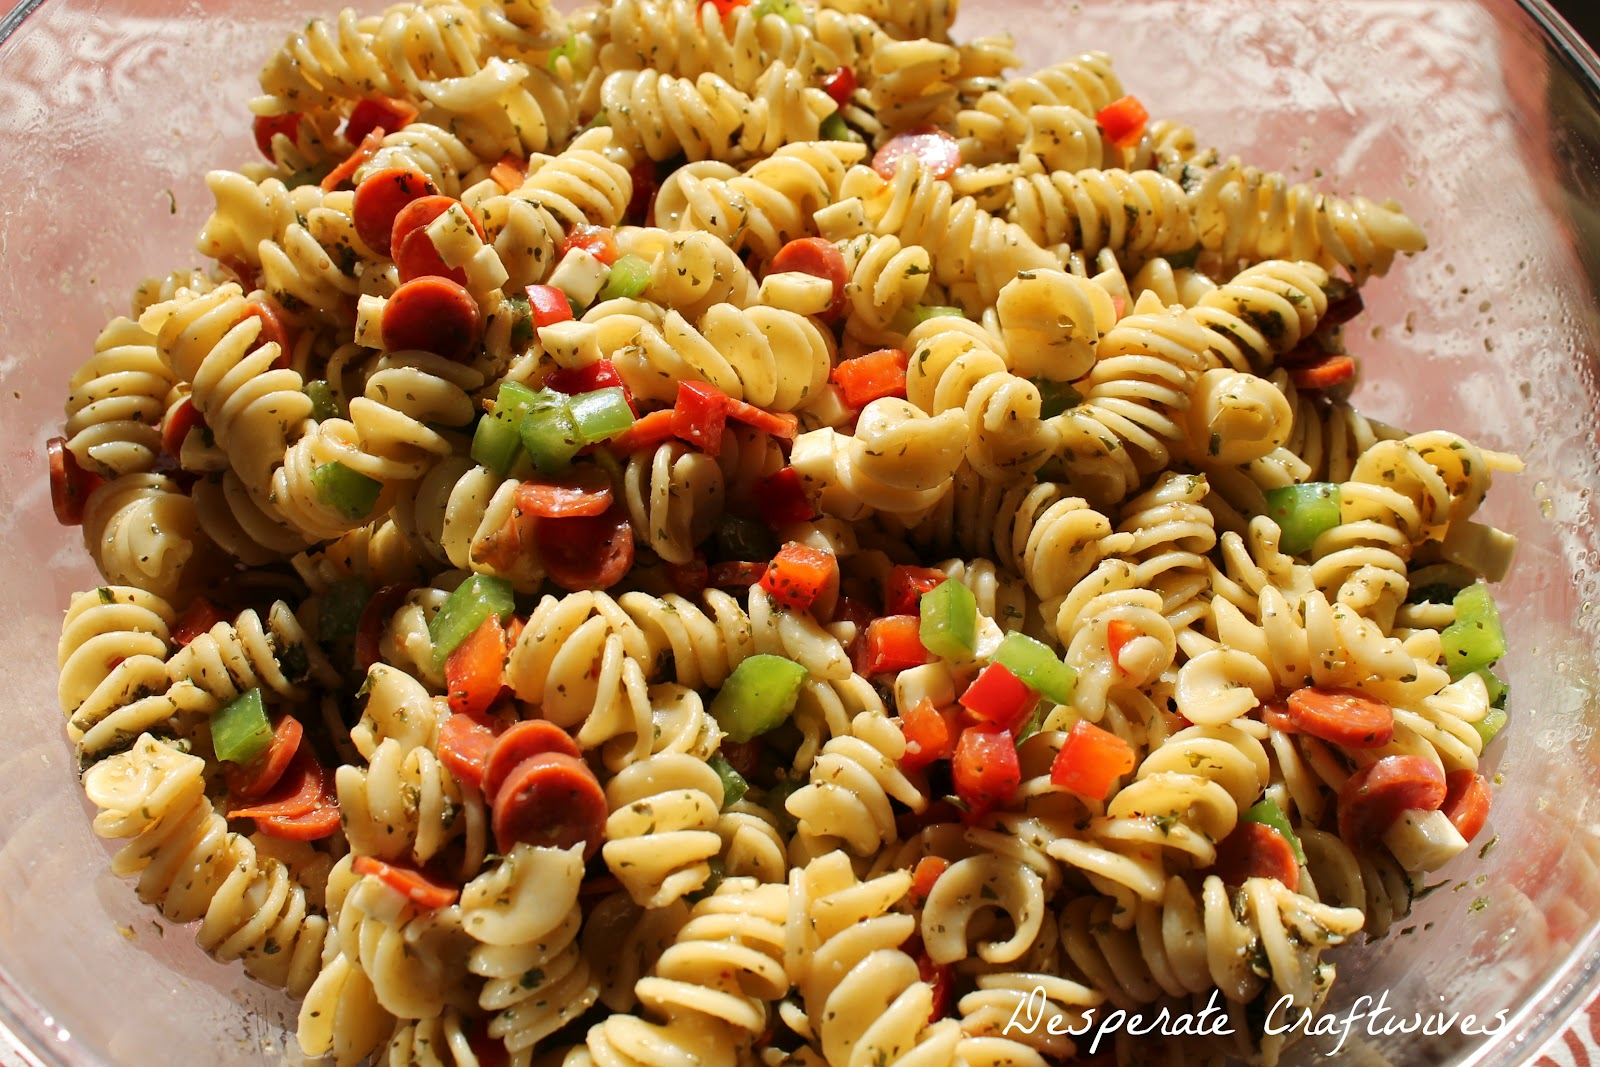 Desperate Craftwives: Zesty Italian Pasta Salad